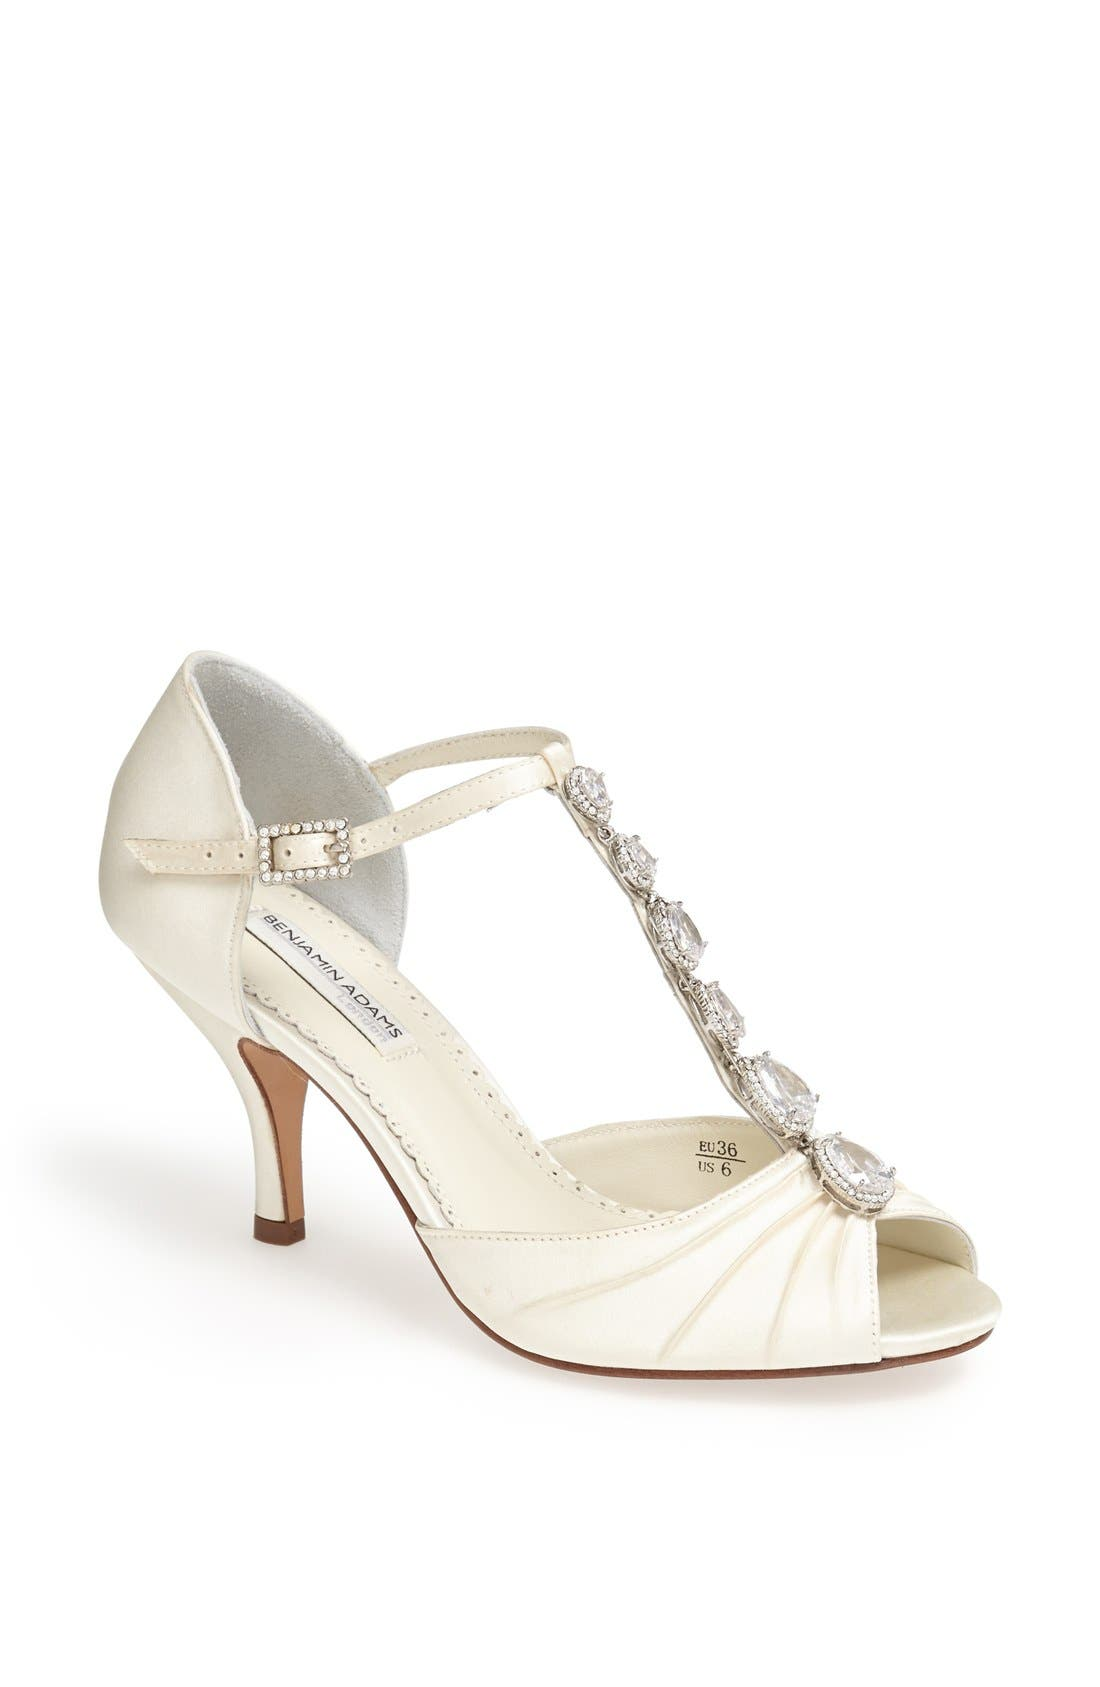 Main Image - Benjamin Adams London 'Mia' Crystal Embellished Sandal